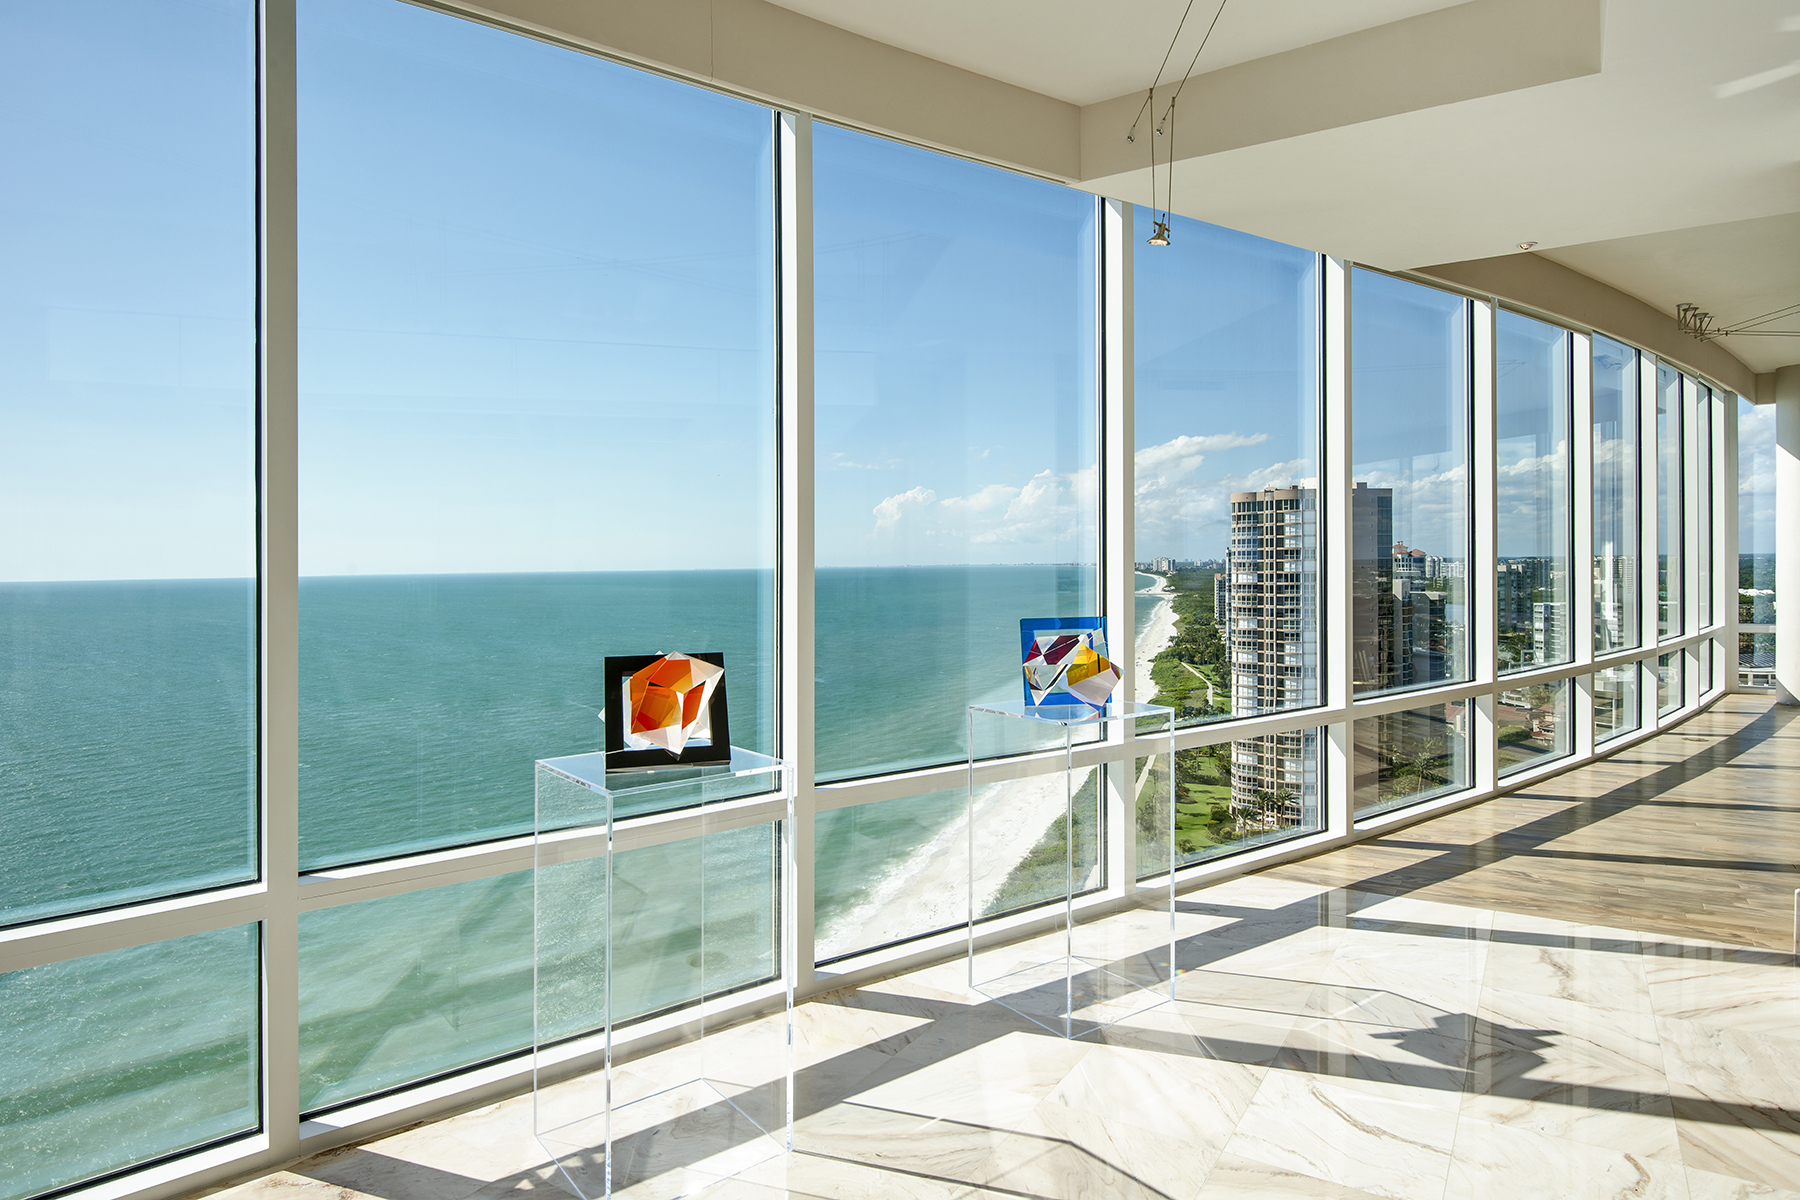 Condominium for Sale at PARK SHORE - LE RIVAGE 4351 Gulf Shore Blvd N PH-5, Naples, Florida 34103 United States